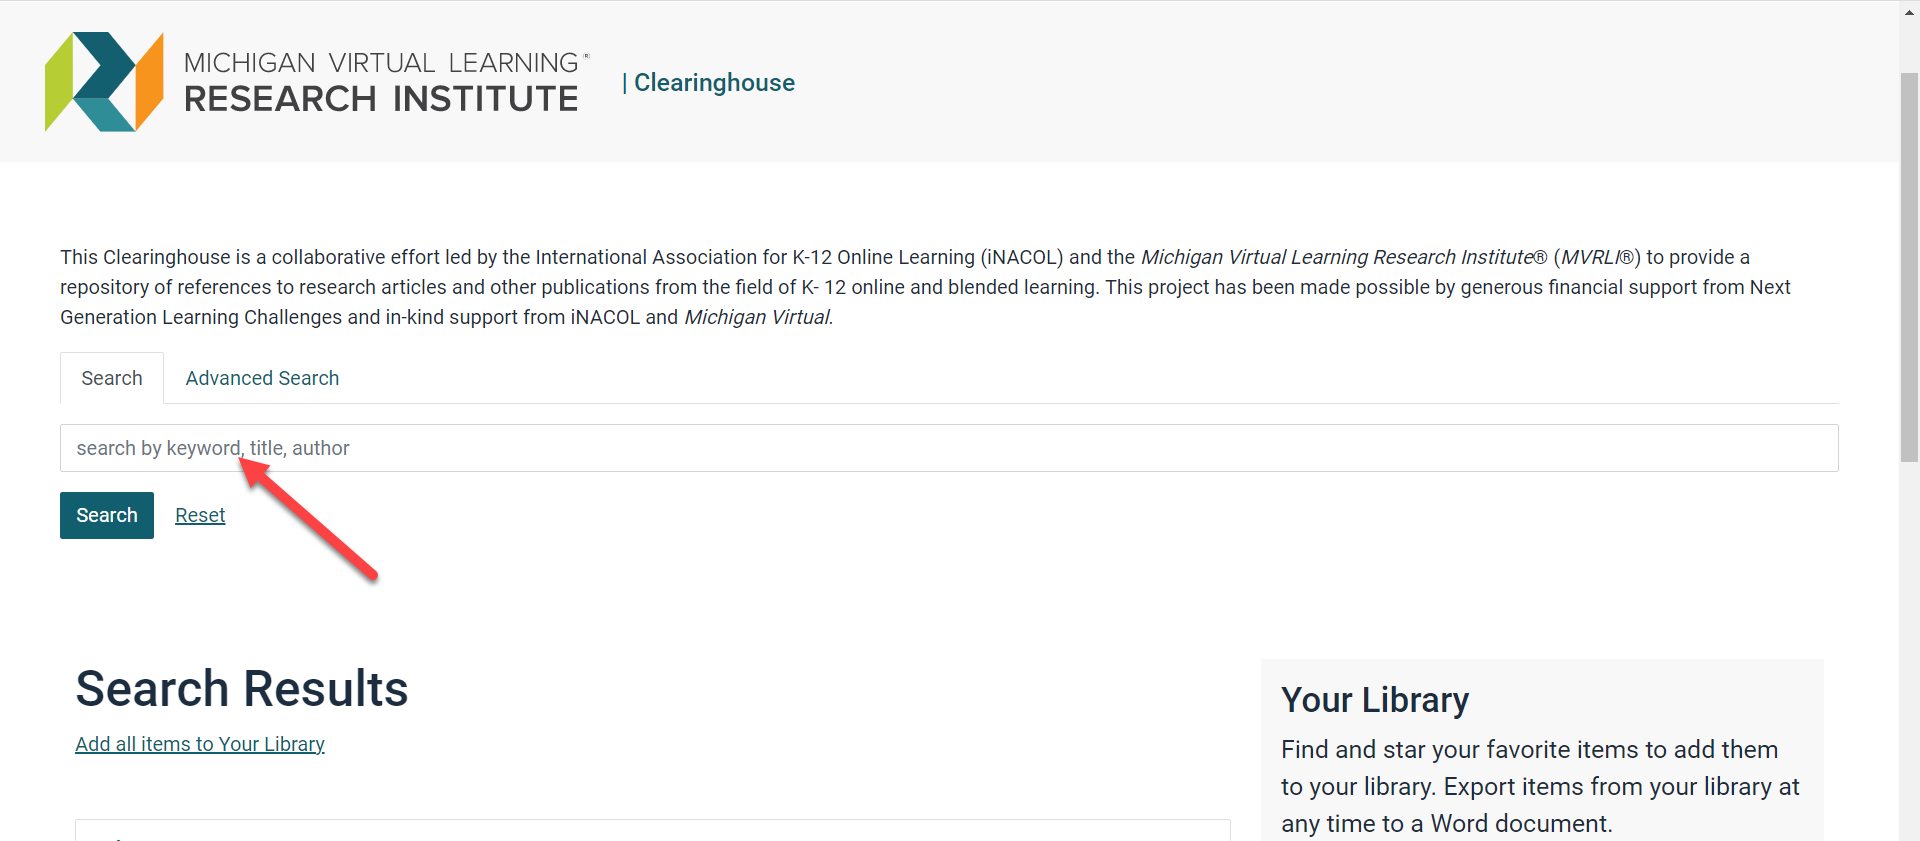 Image of the Clearinghouse homepage with an arrow pointing to the search field below the Search tab.